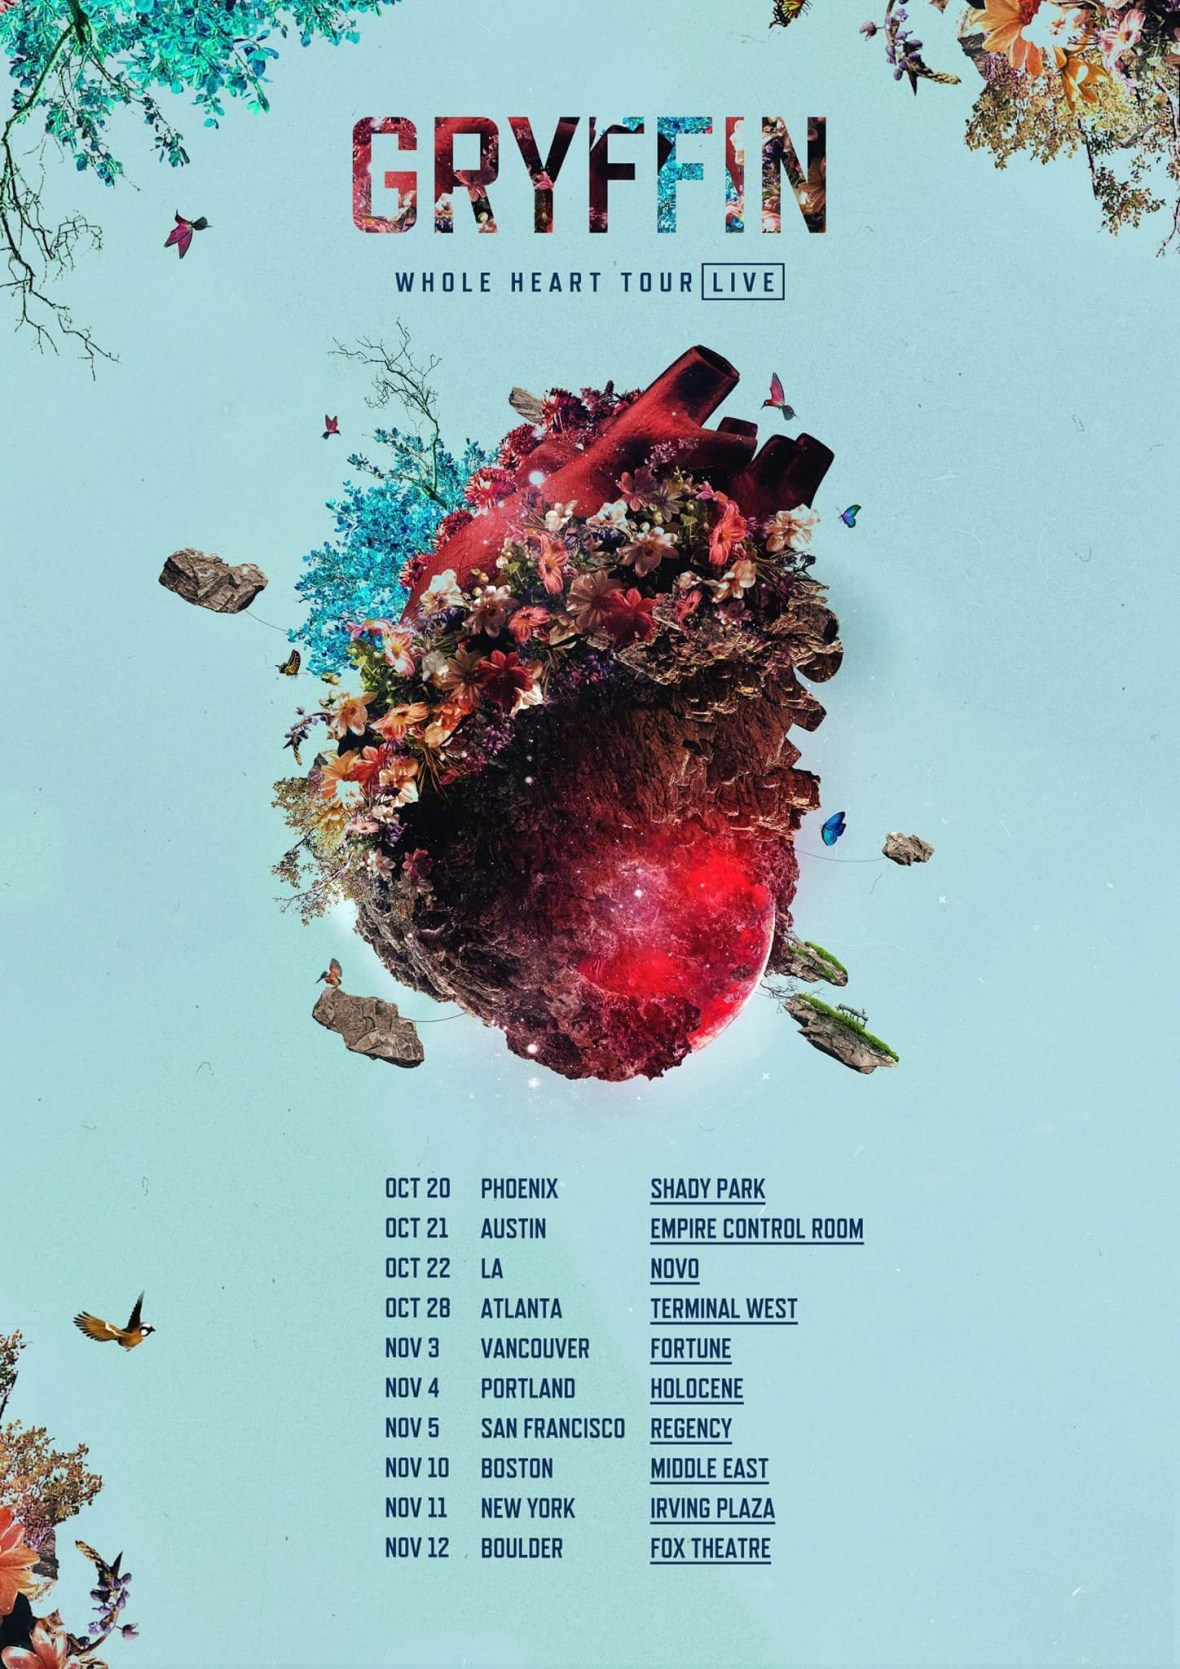 we-own-the-nite-nyc_gryffin_whole-heart_tour_live